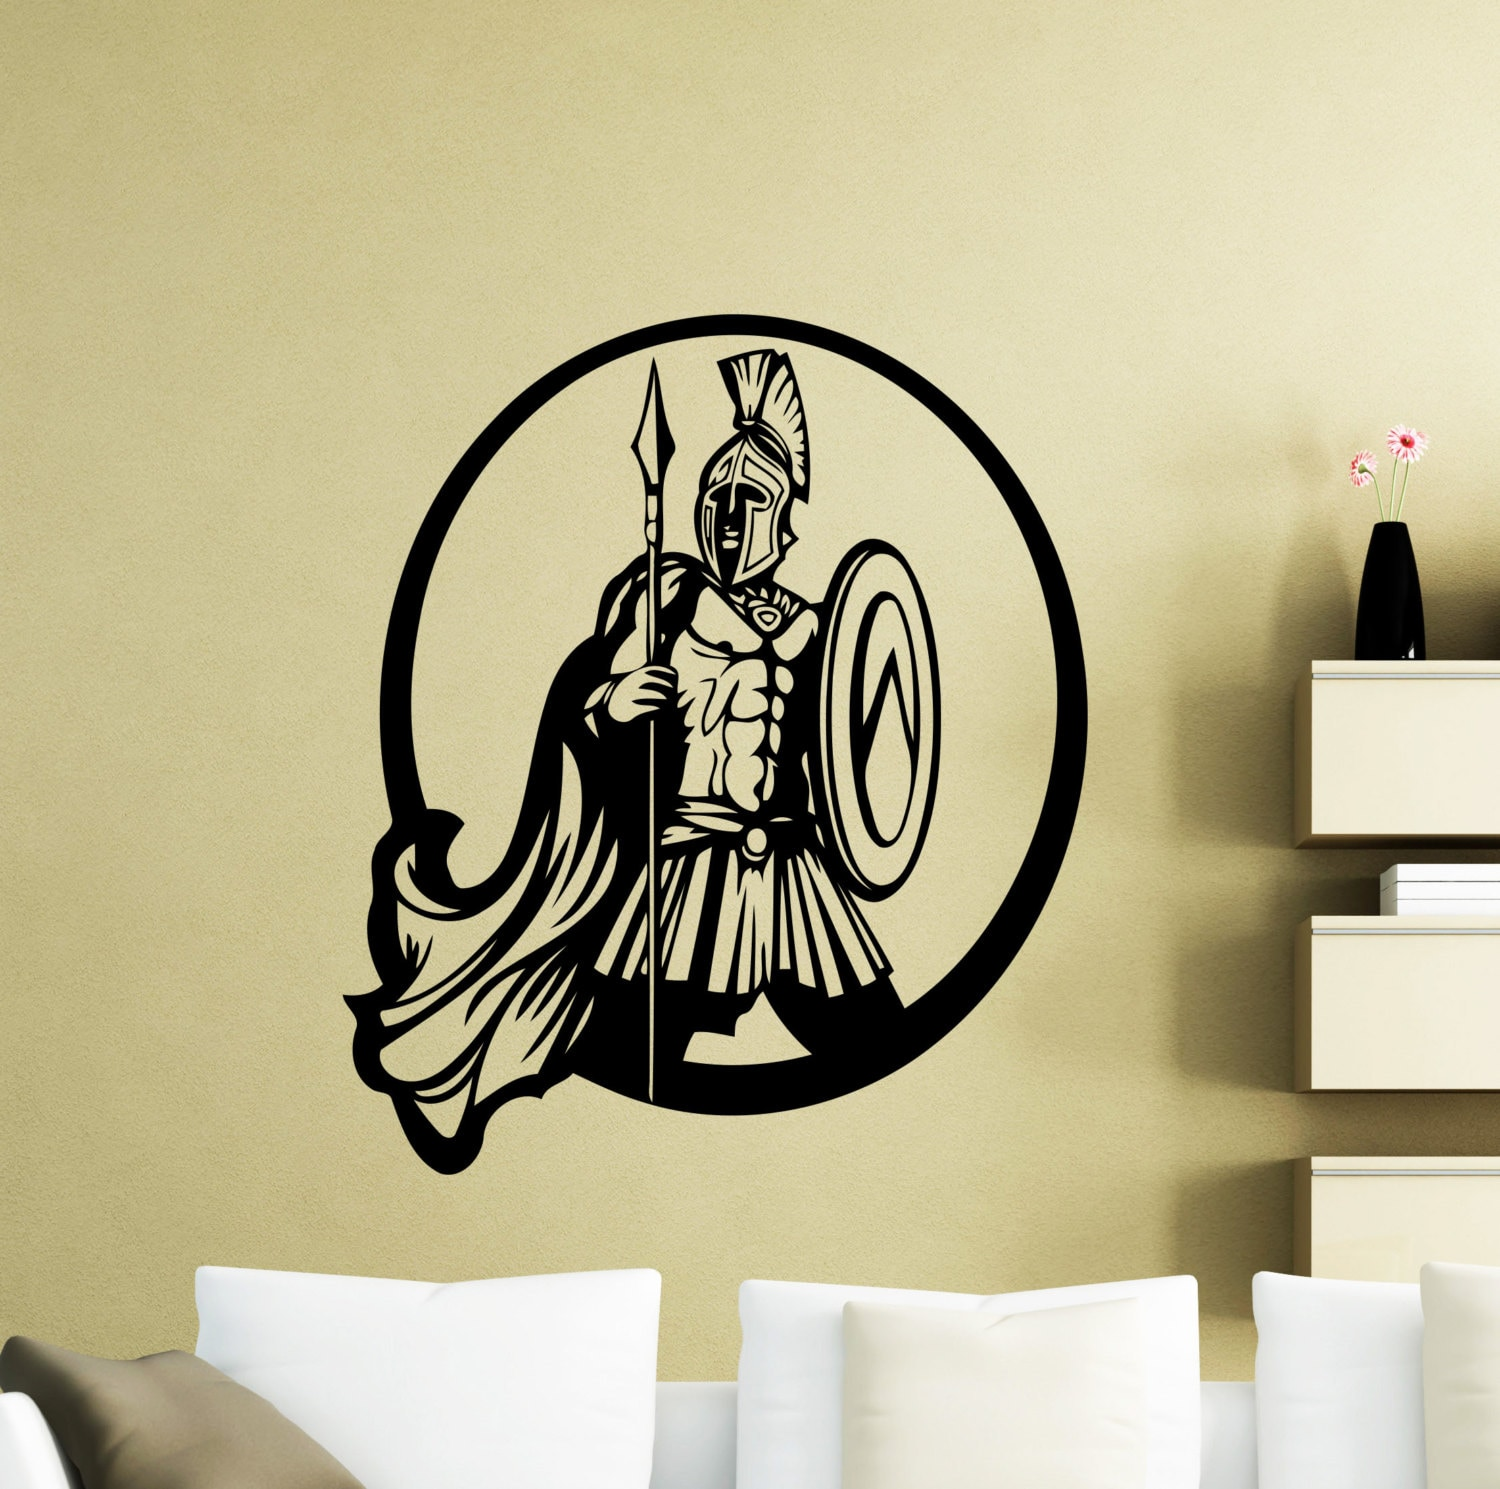 Gladiator Wall Decal Rome Warrior Cartoon Movie Vinyl Sticker | Etsy